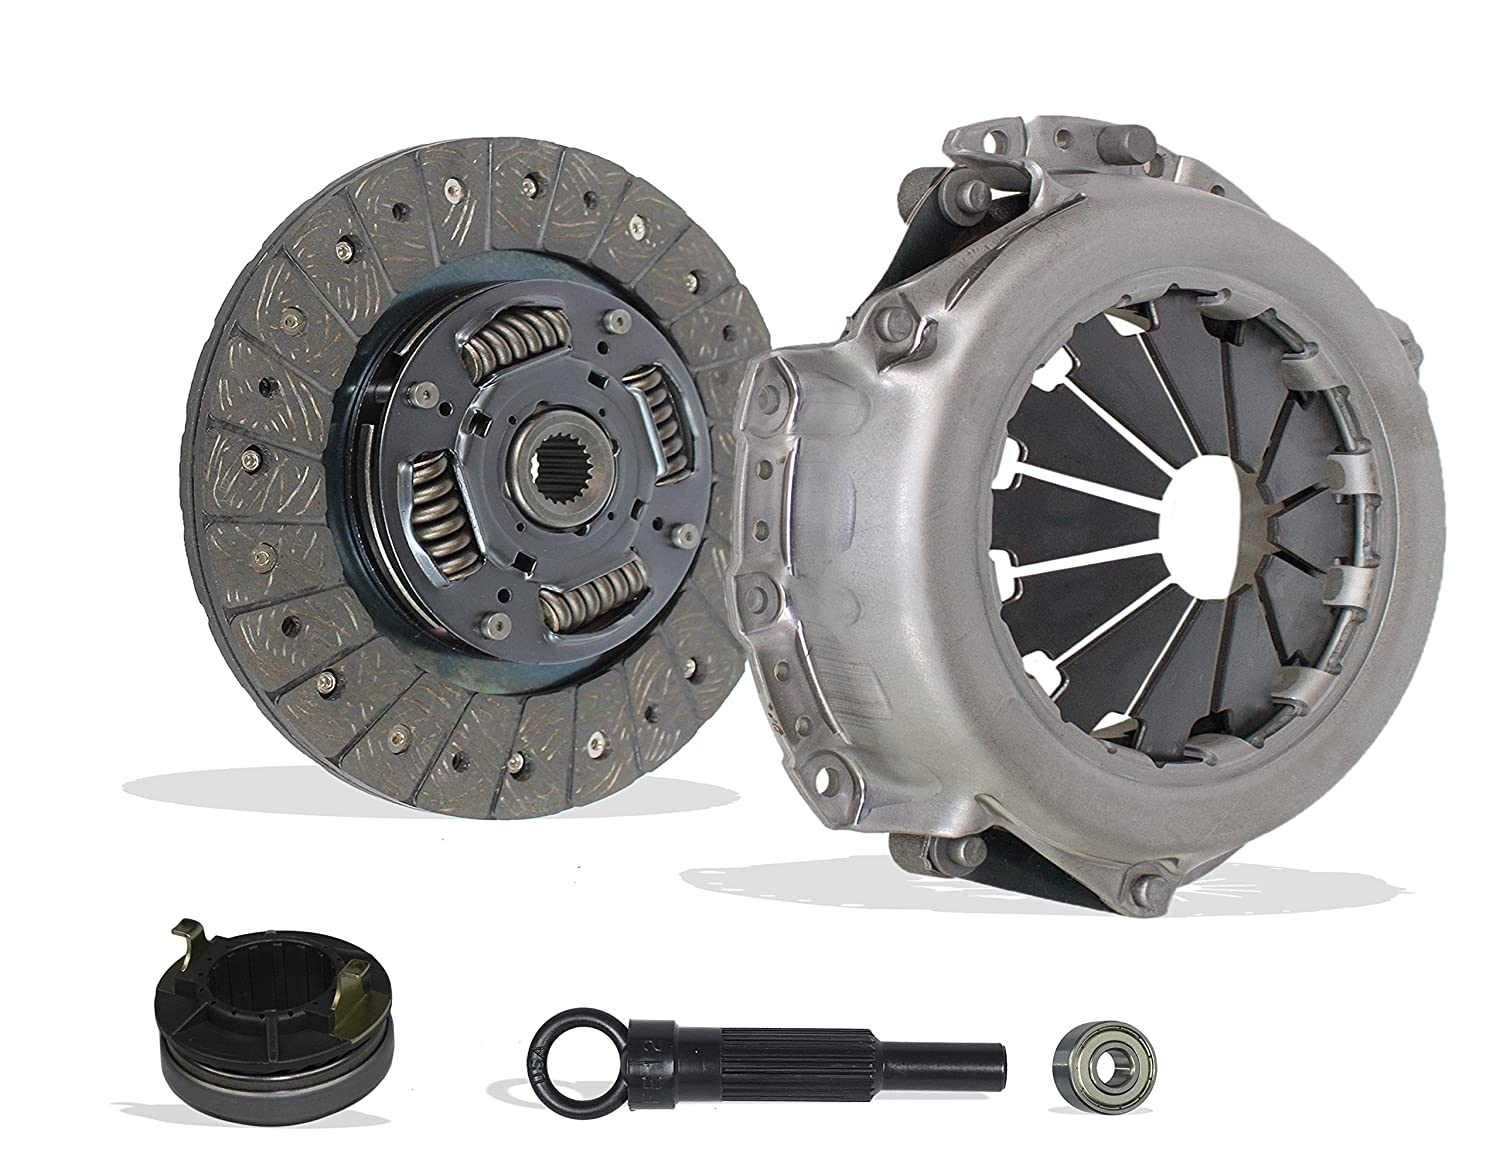 Amazon.com: Clutch Kit Works With Hyundai Accent Kia Rio Base Lx Sx Gls Gs Se Hatchback Sedan 2006-2011 1.6L l4 GAS DOHC Naturally Aspirated: Automotive